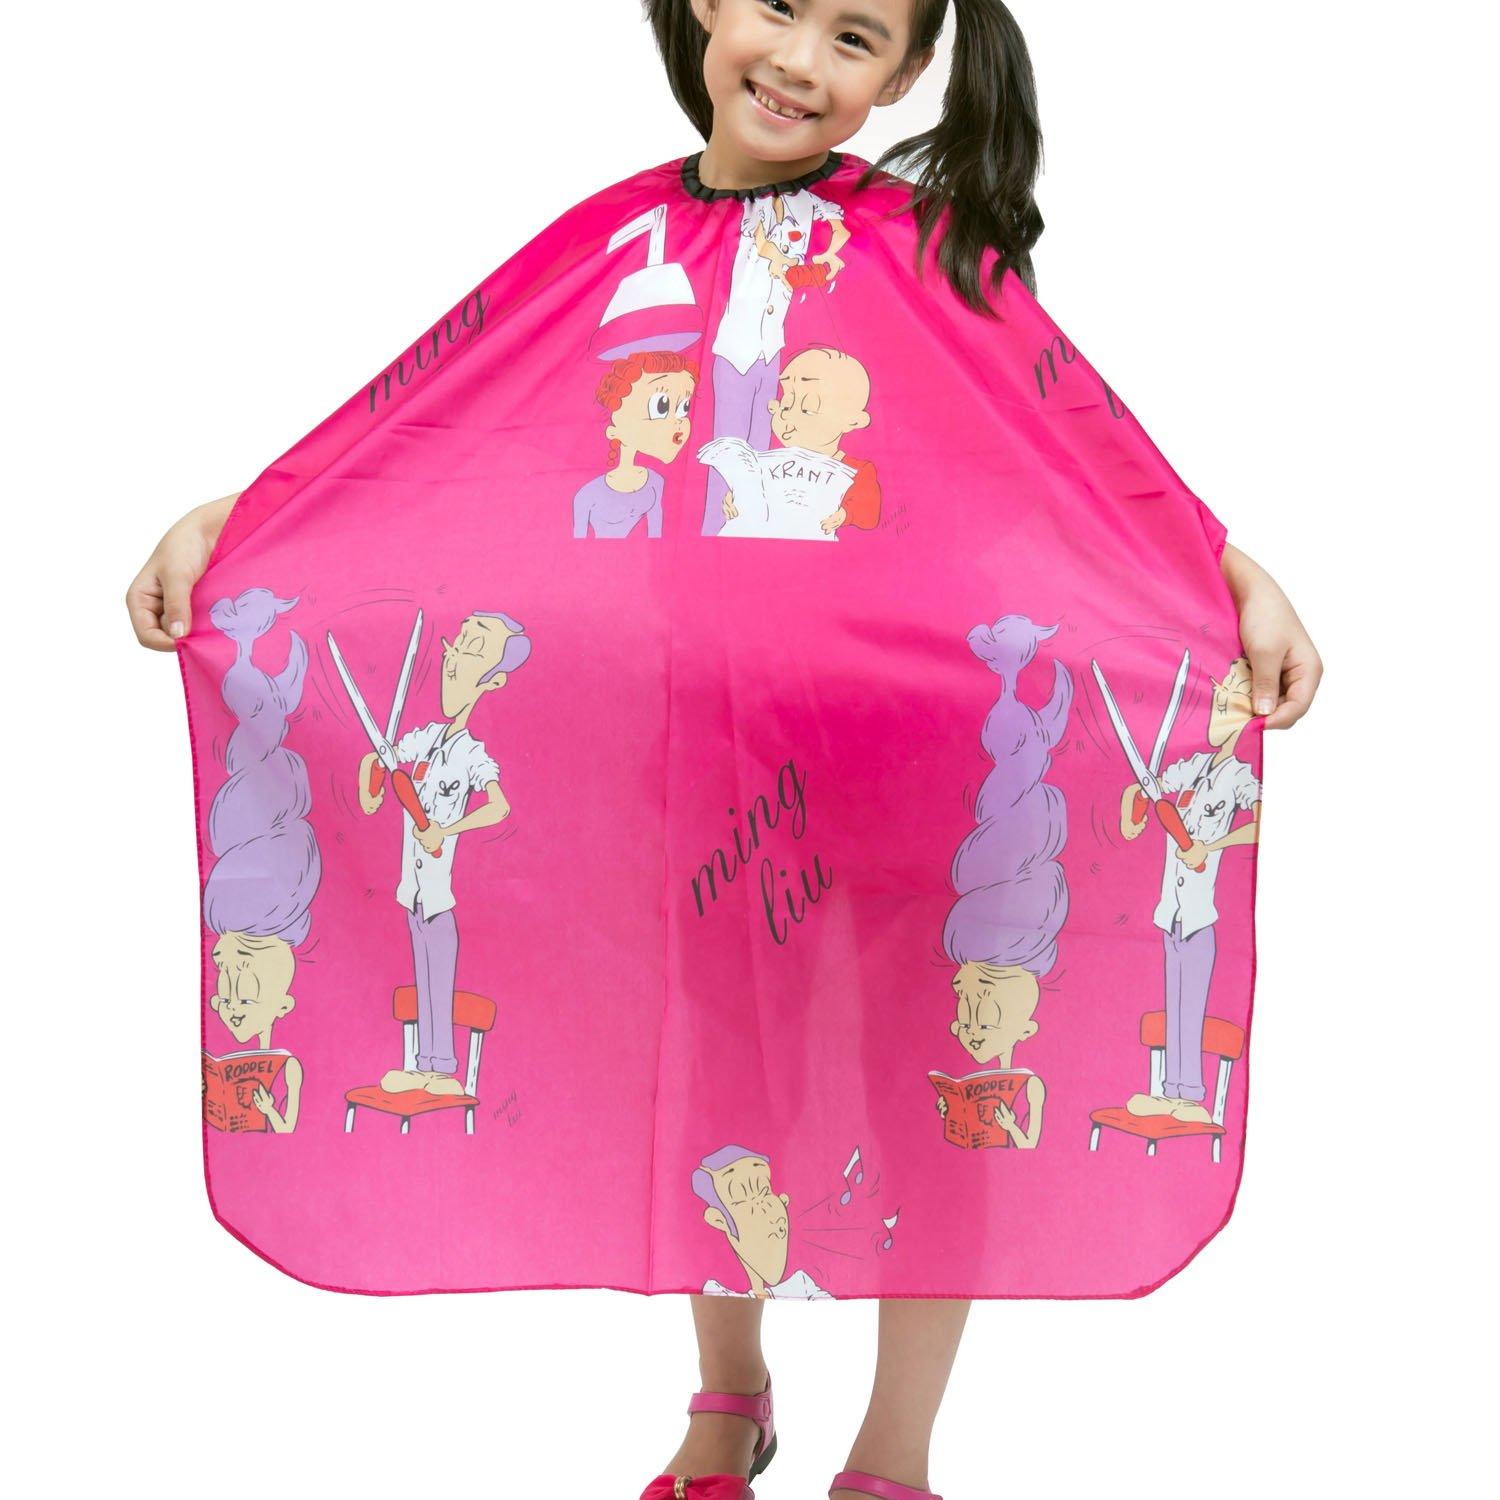 Colorfulife Child Hair Cutting Waterproof Cape Wai Cloth Barber Kids Hair Styling Cape Professional Home Salon Camps & Hairdressing Wrap Children Cartoon Men Hairdresser Pattern Capes (Hot Pink)